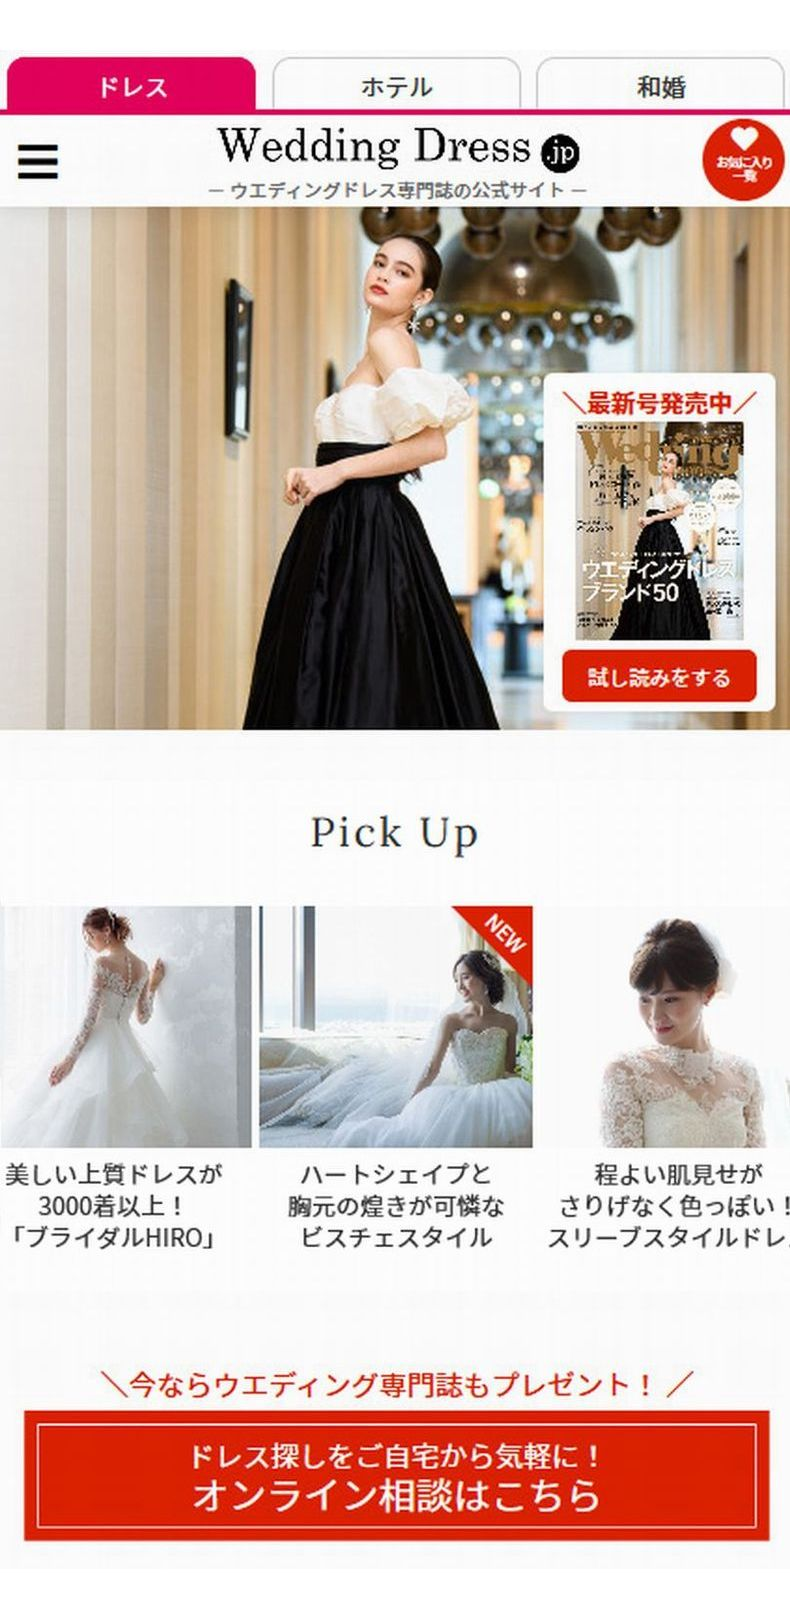 Wedding Dress.jp